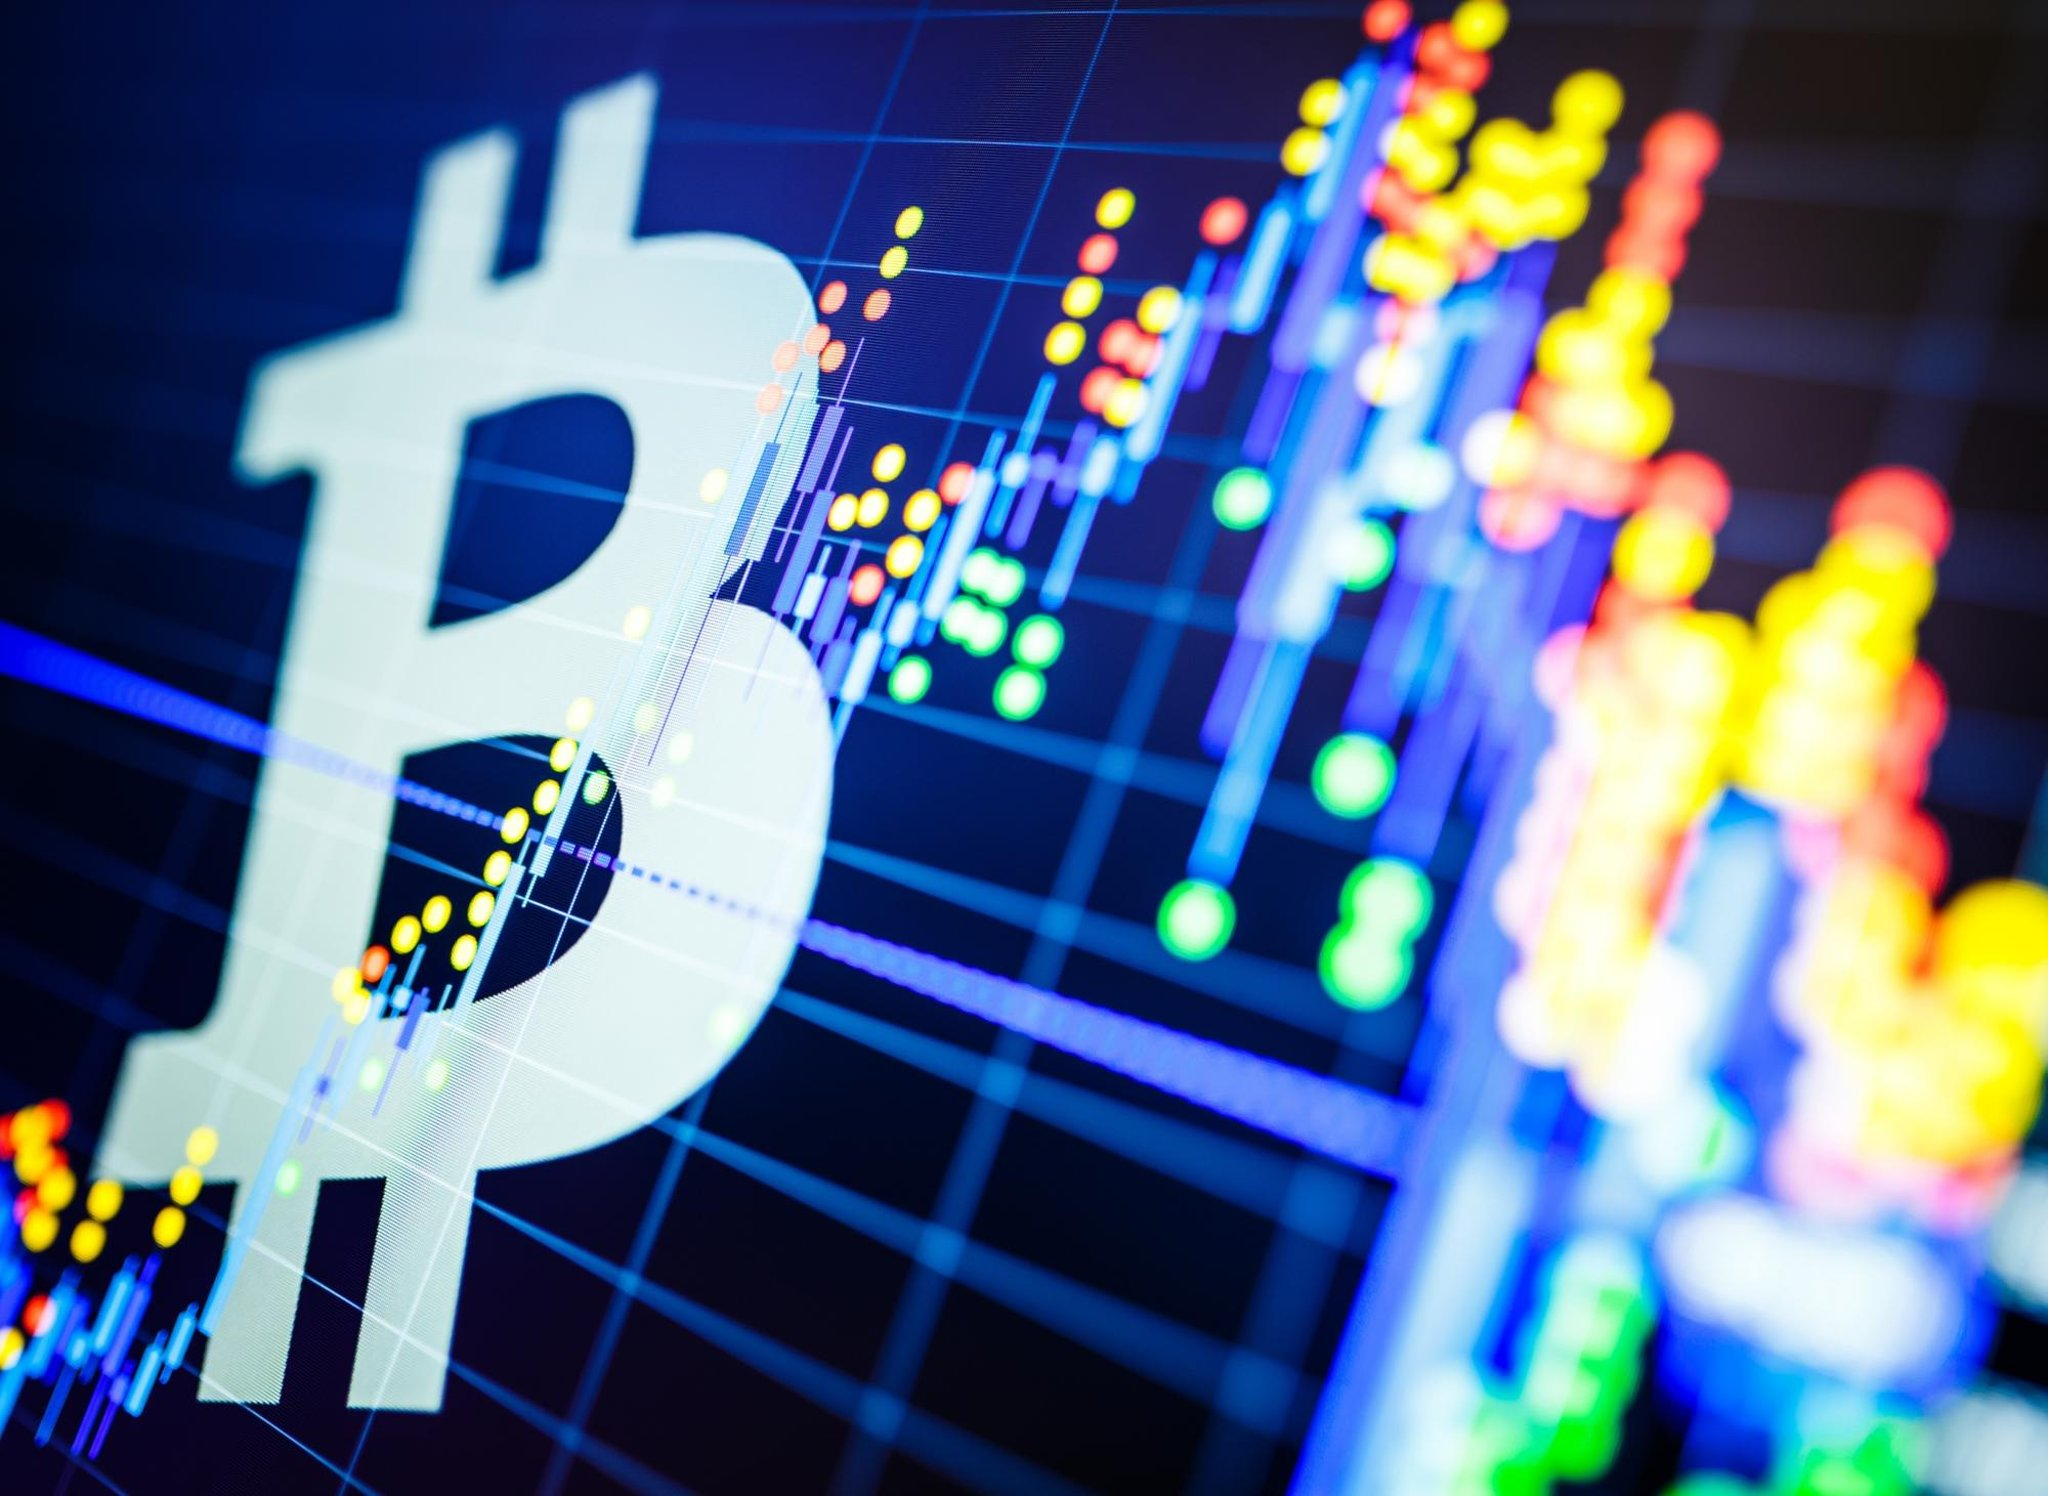 Bitcoin price rises above $50,000: Latest crypto prices for Bitcoin,  Ethereum and Cardano as PayPal launches new UK cryptocurrency service   The  Scotsman